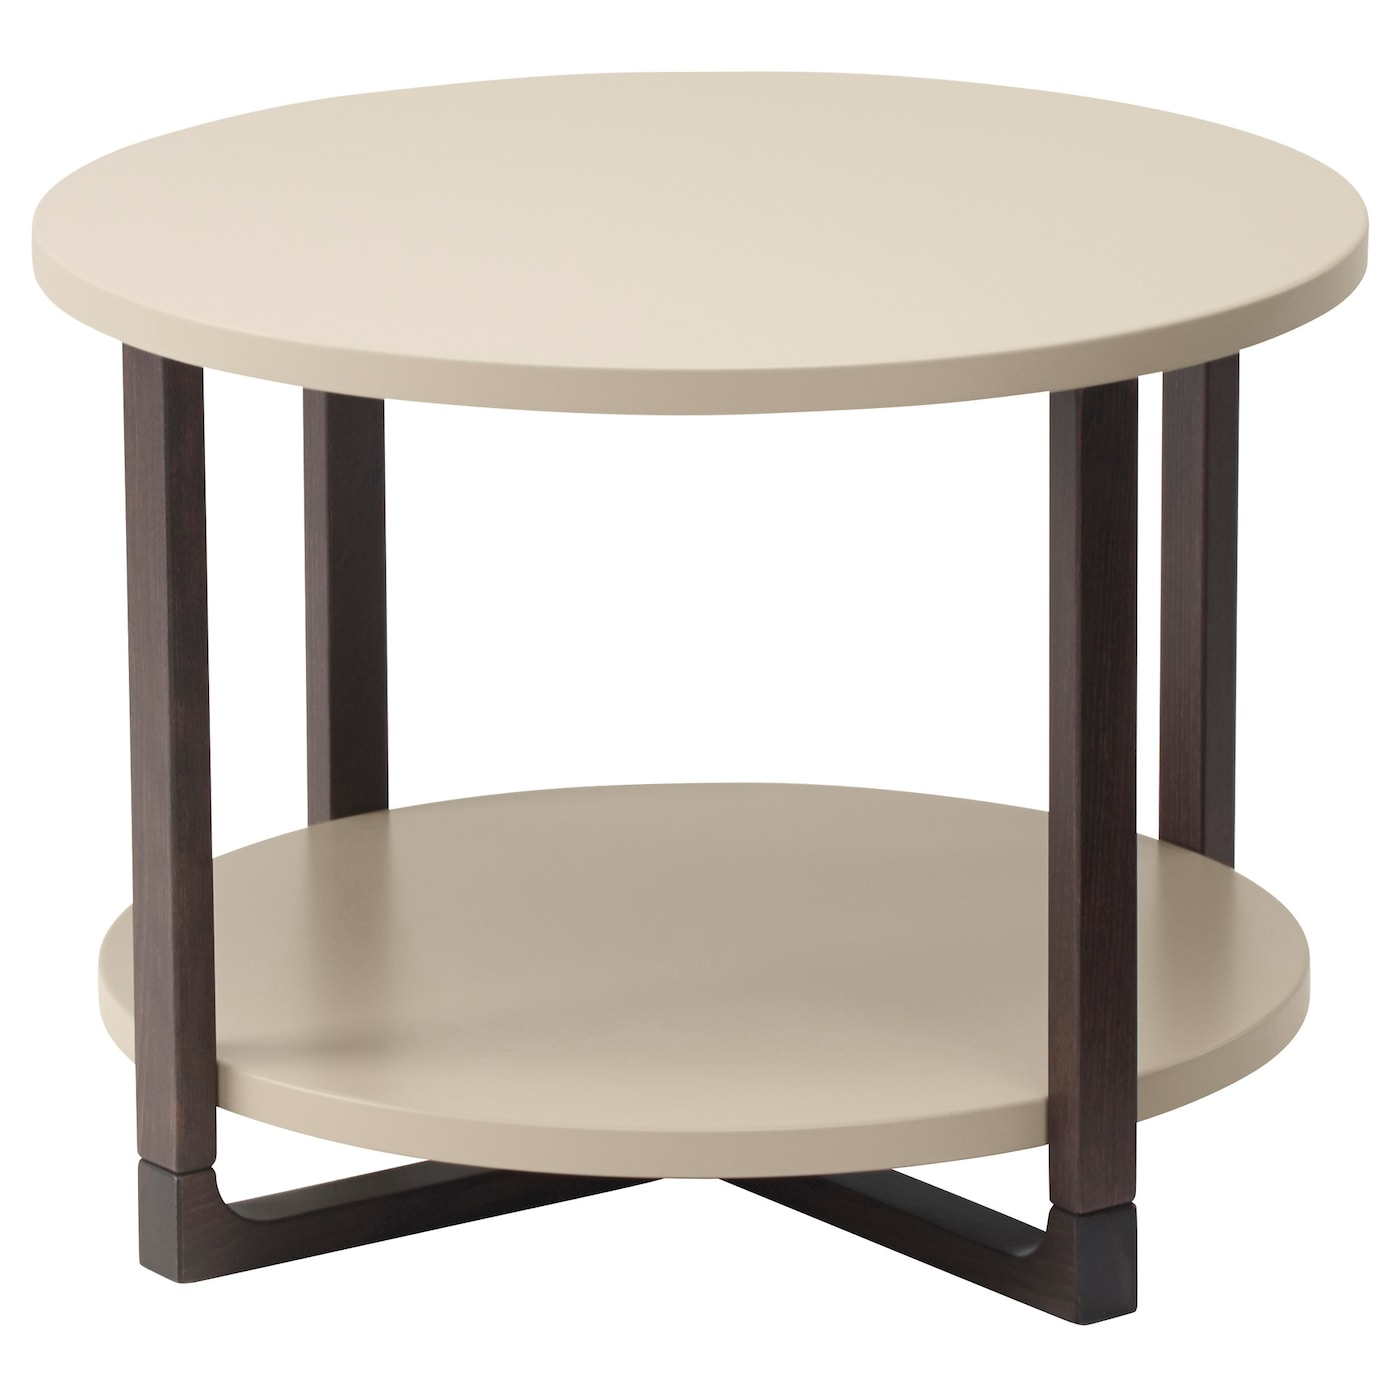 Rissna side table beige 60 cm ikea Coffee table and side table